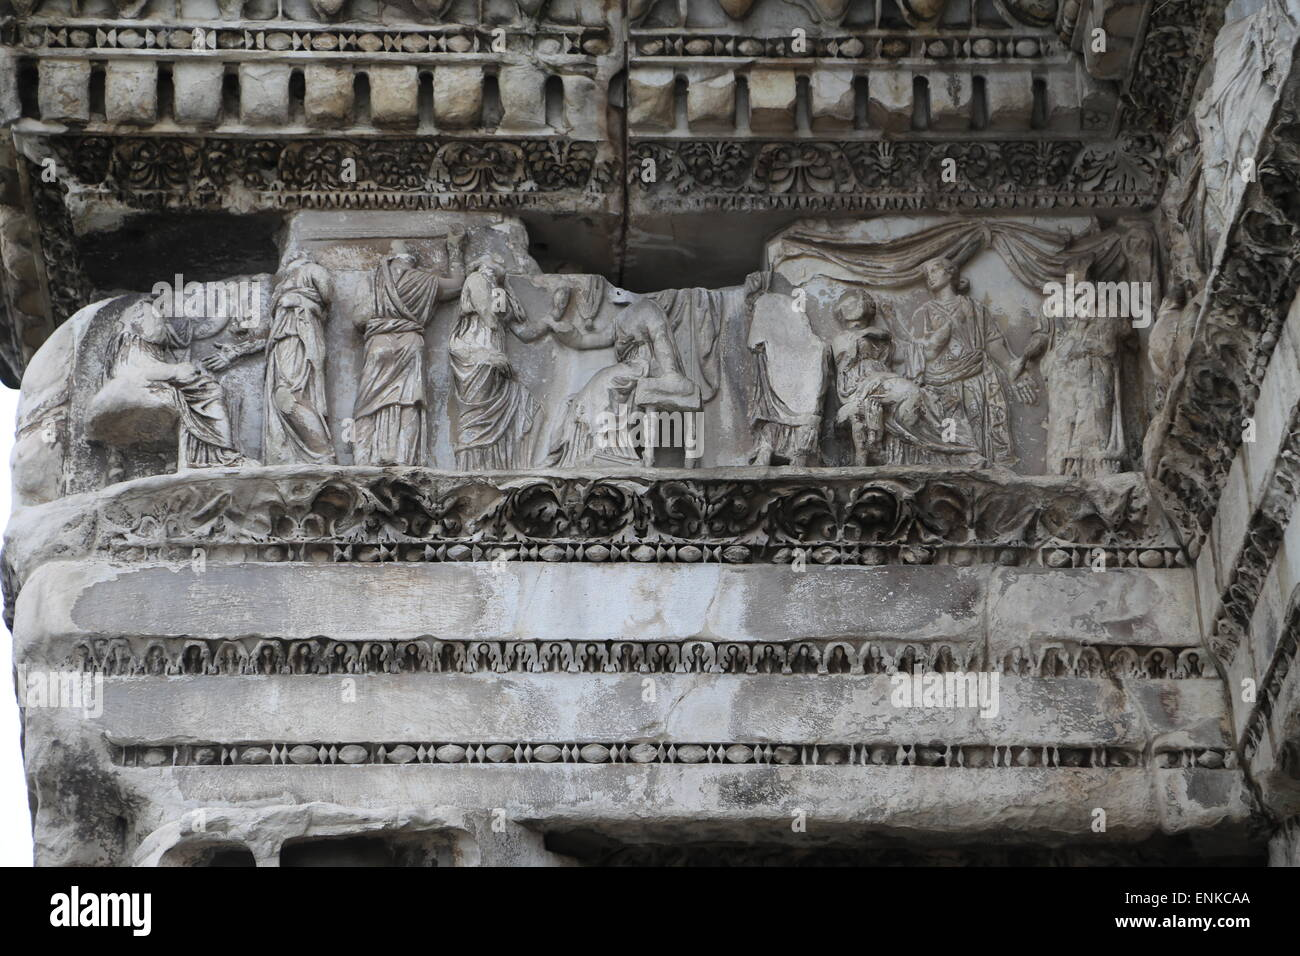 Italy. Rome. Forum of Nerva. Temple Minerva. 1st century AD. Remains of peristyle. Detail reliefs. - Stock Image